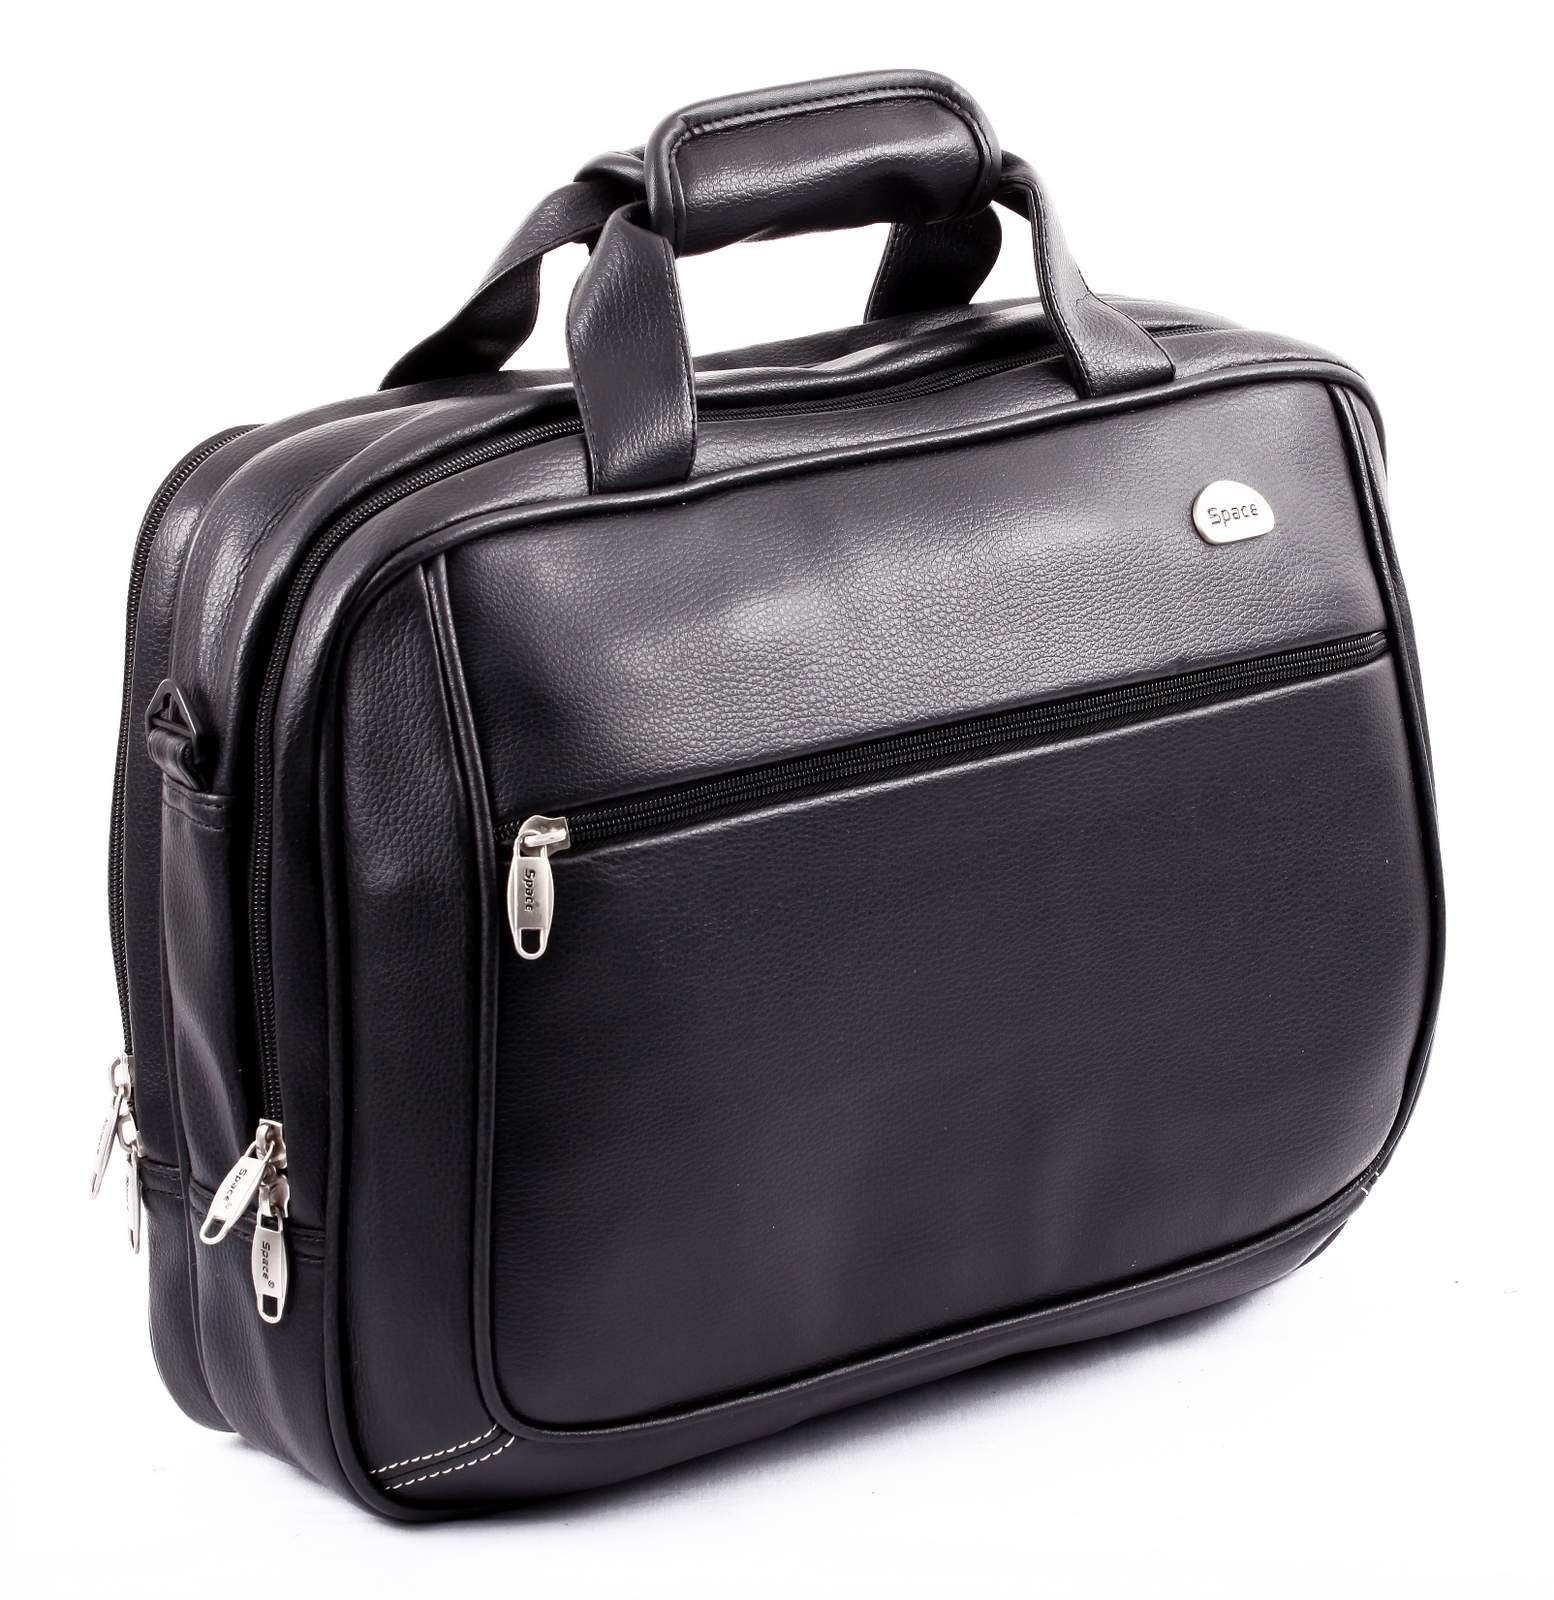 Space Leatherite PU Laptop Bag in Bangalore